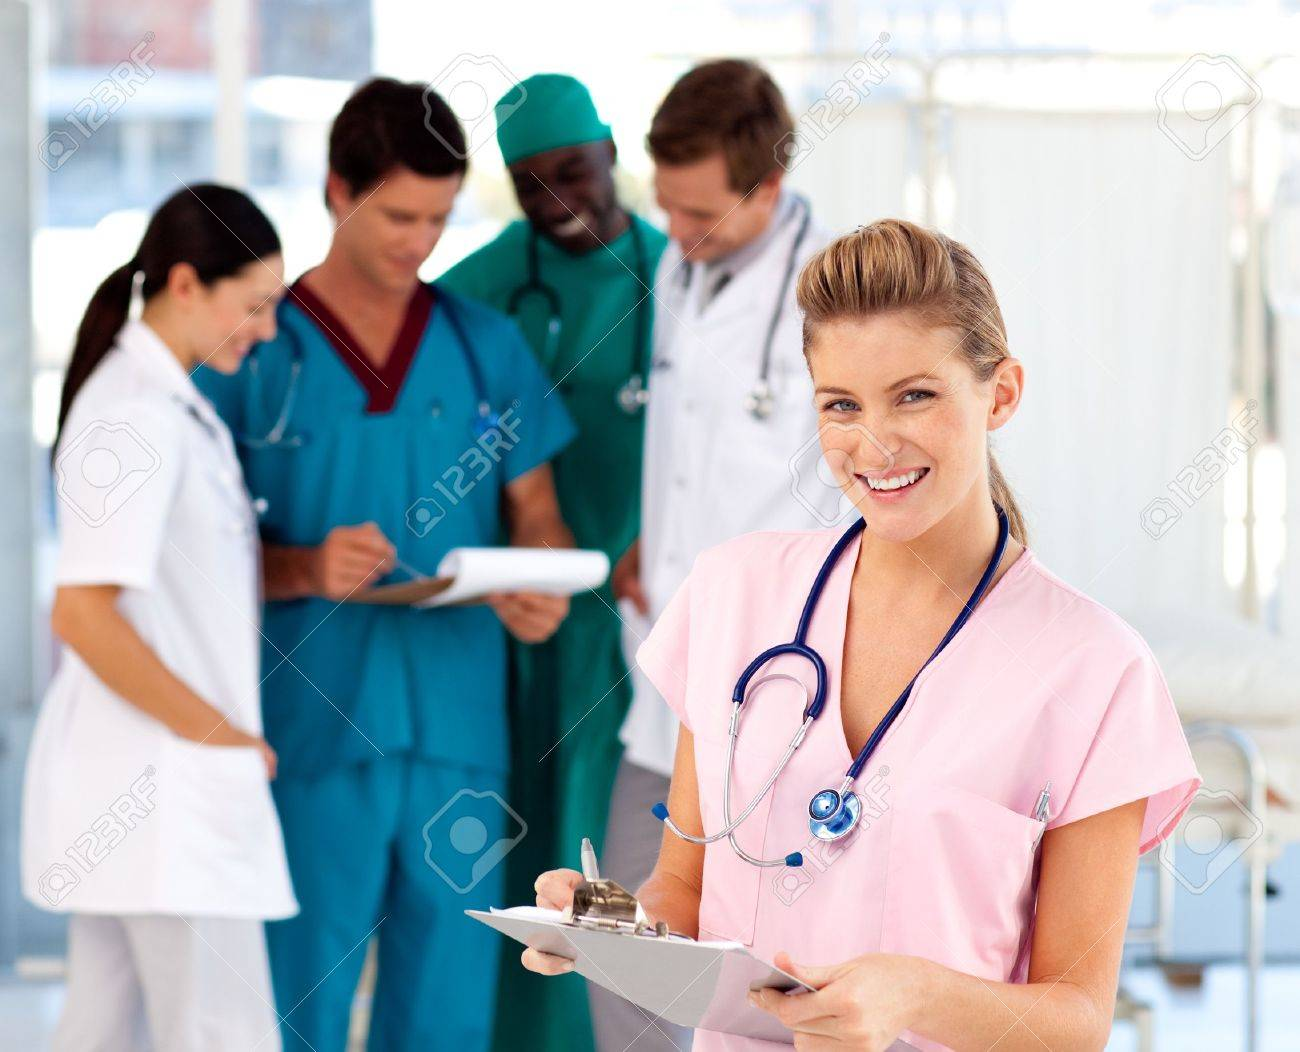 Blonde nurse with her team in the background Stock Photo - 10233802